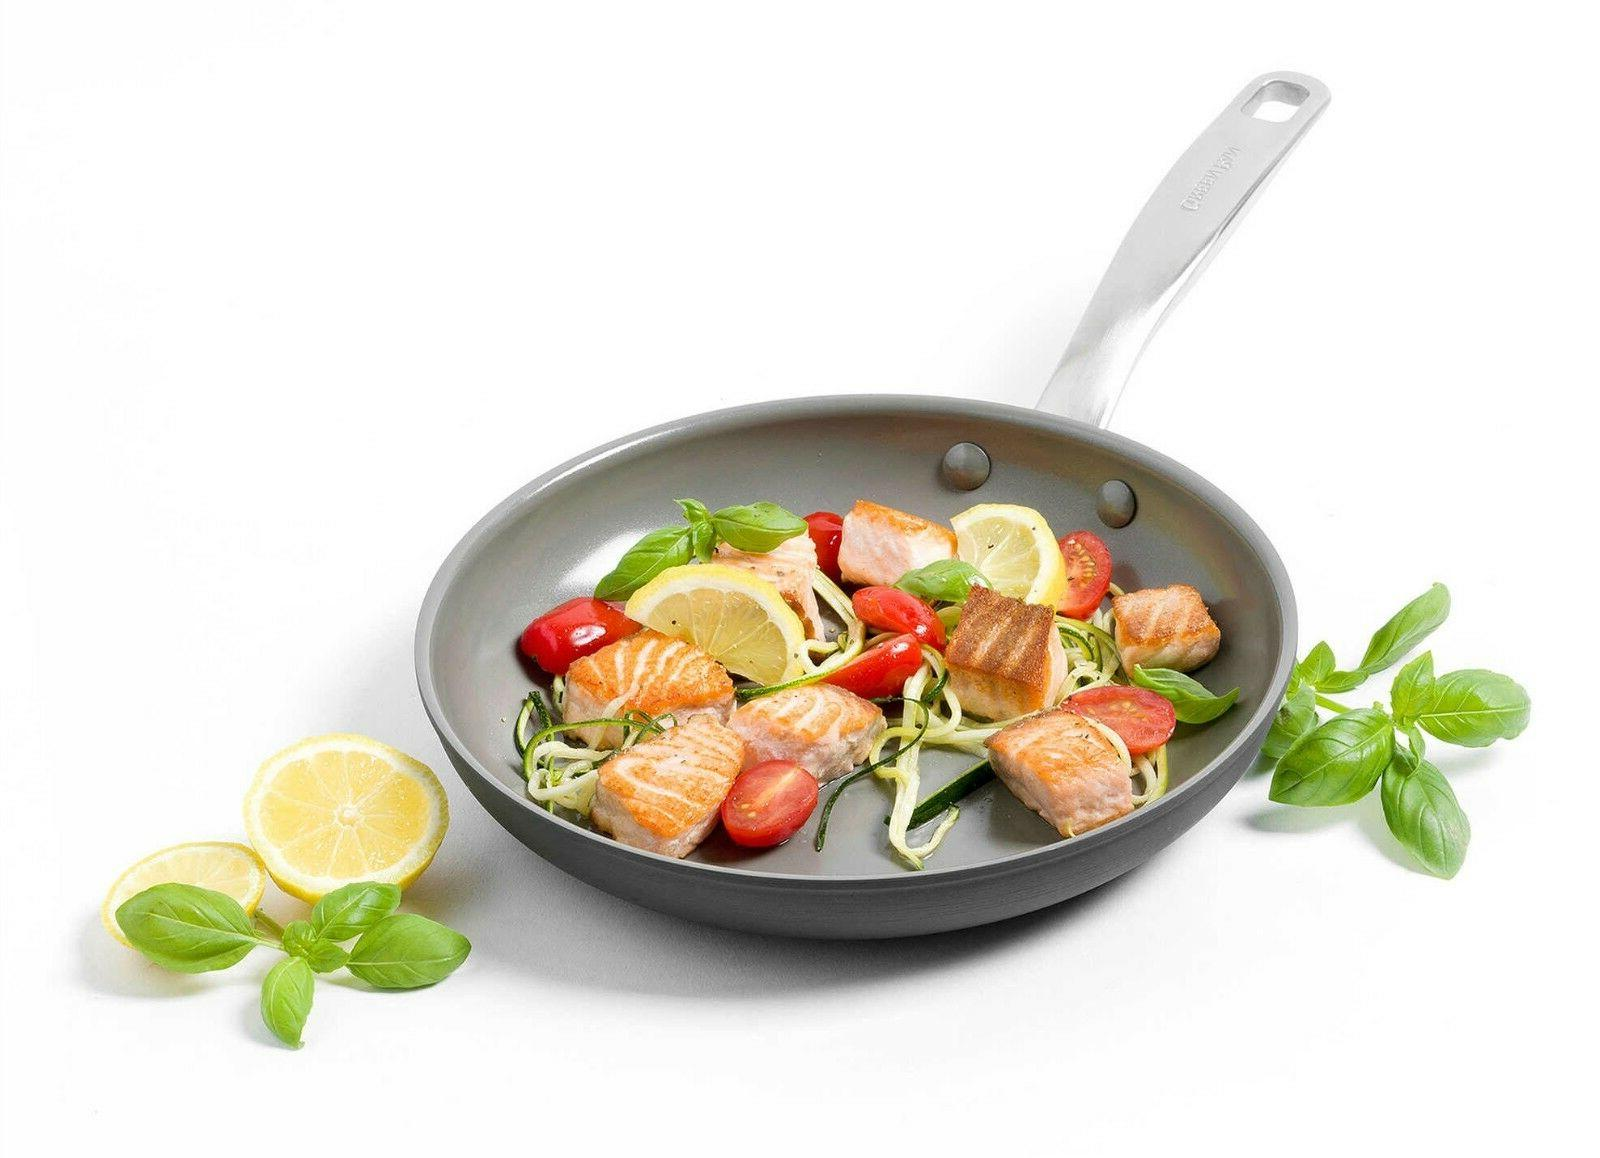 frying pan chatham ceramic nonstick interior anodized